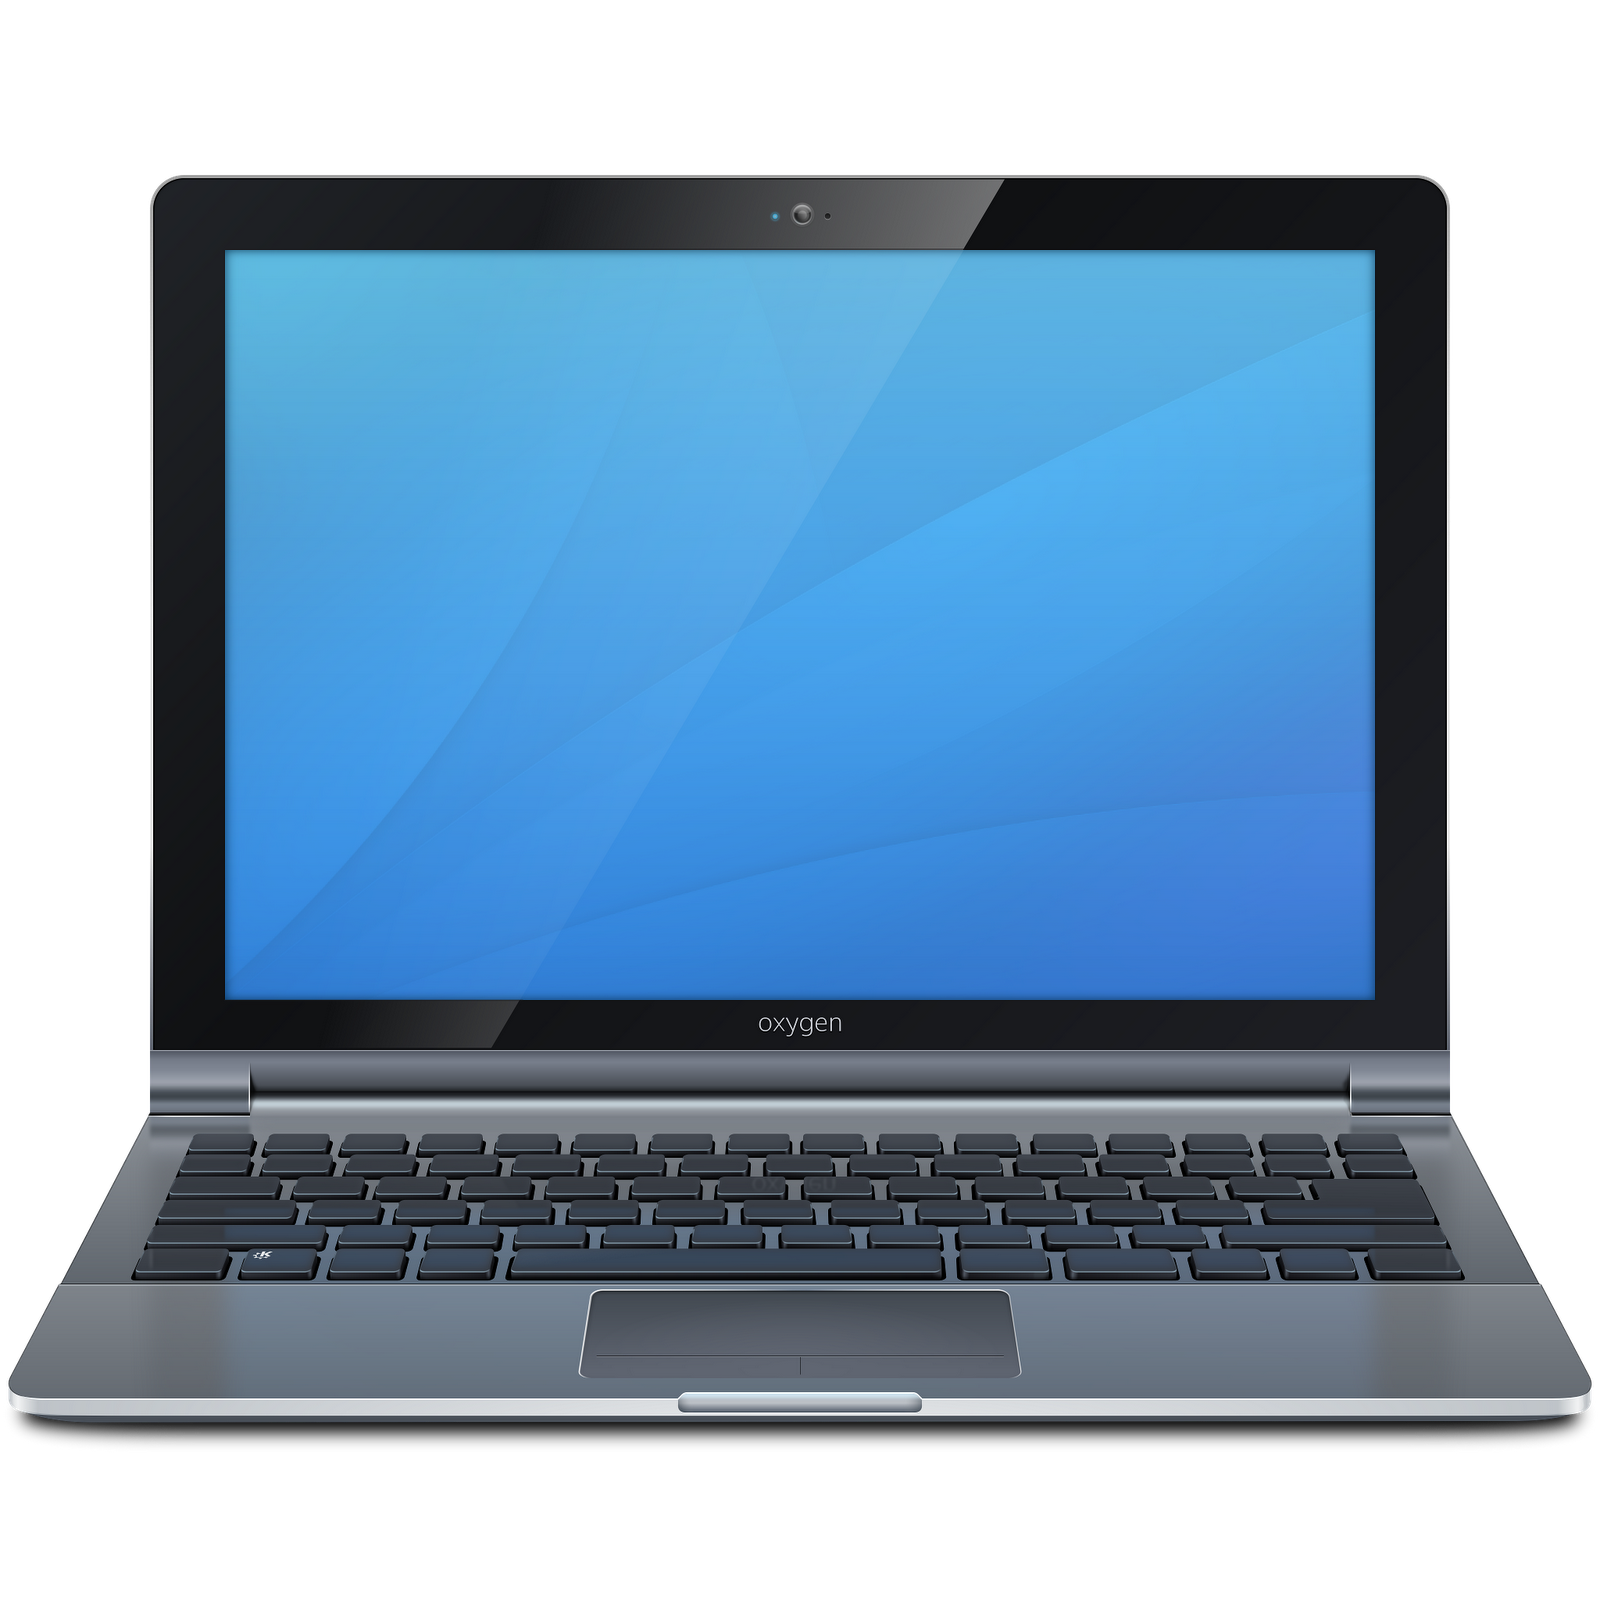 Laptop Computer Images Png HD Wallpapers on picsfair.com